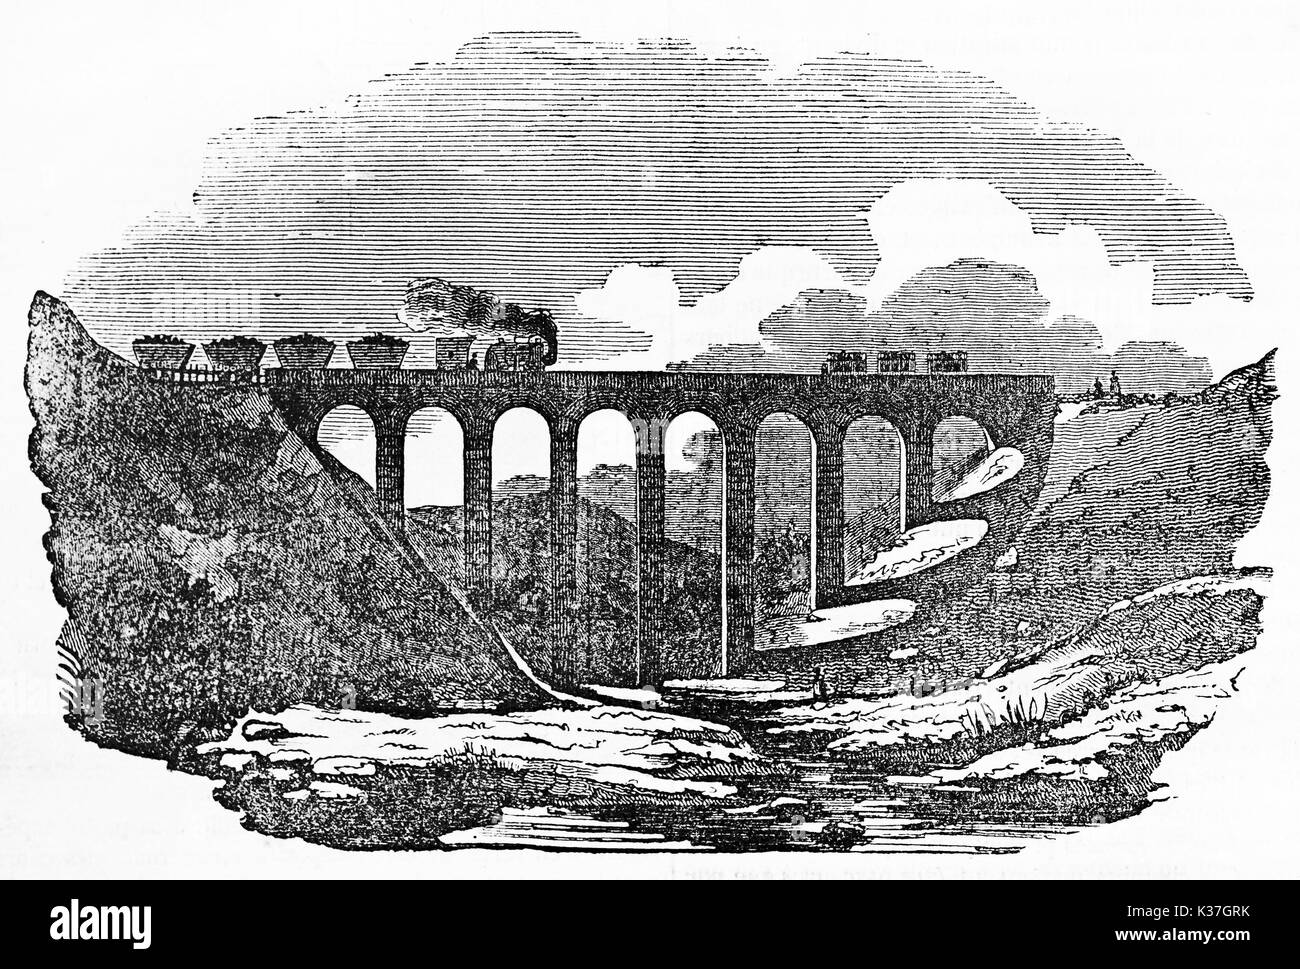 Overall Ancient View Of A Arched Stone Bridge With A Train Passing On Stock Photo Alamy